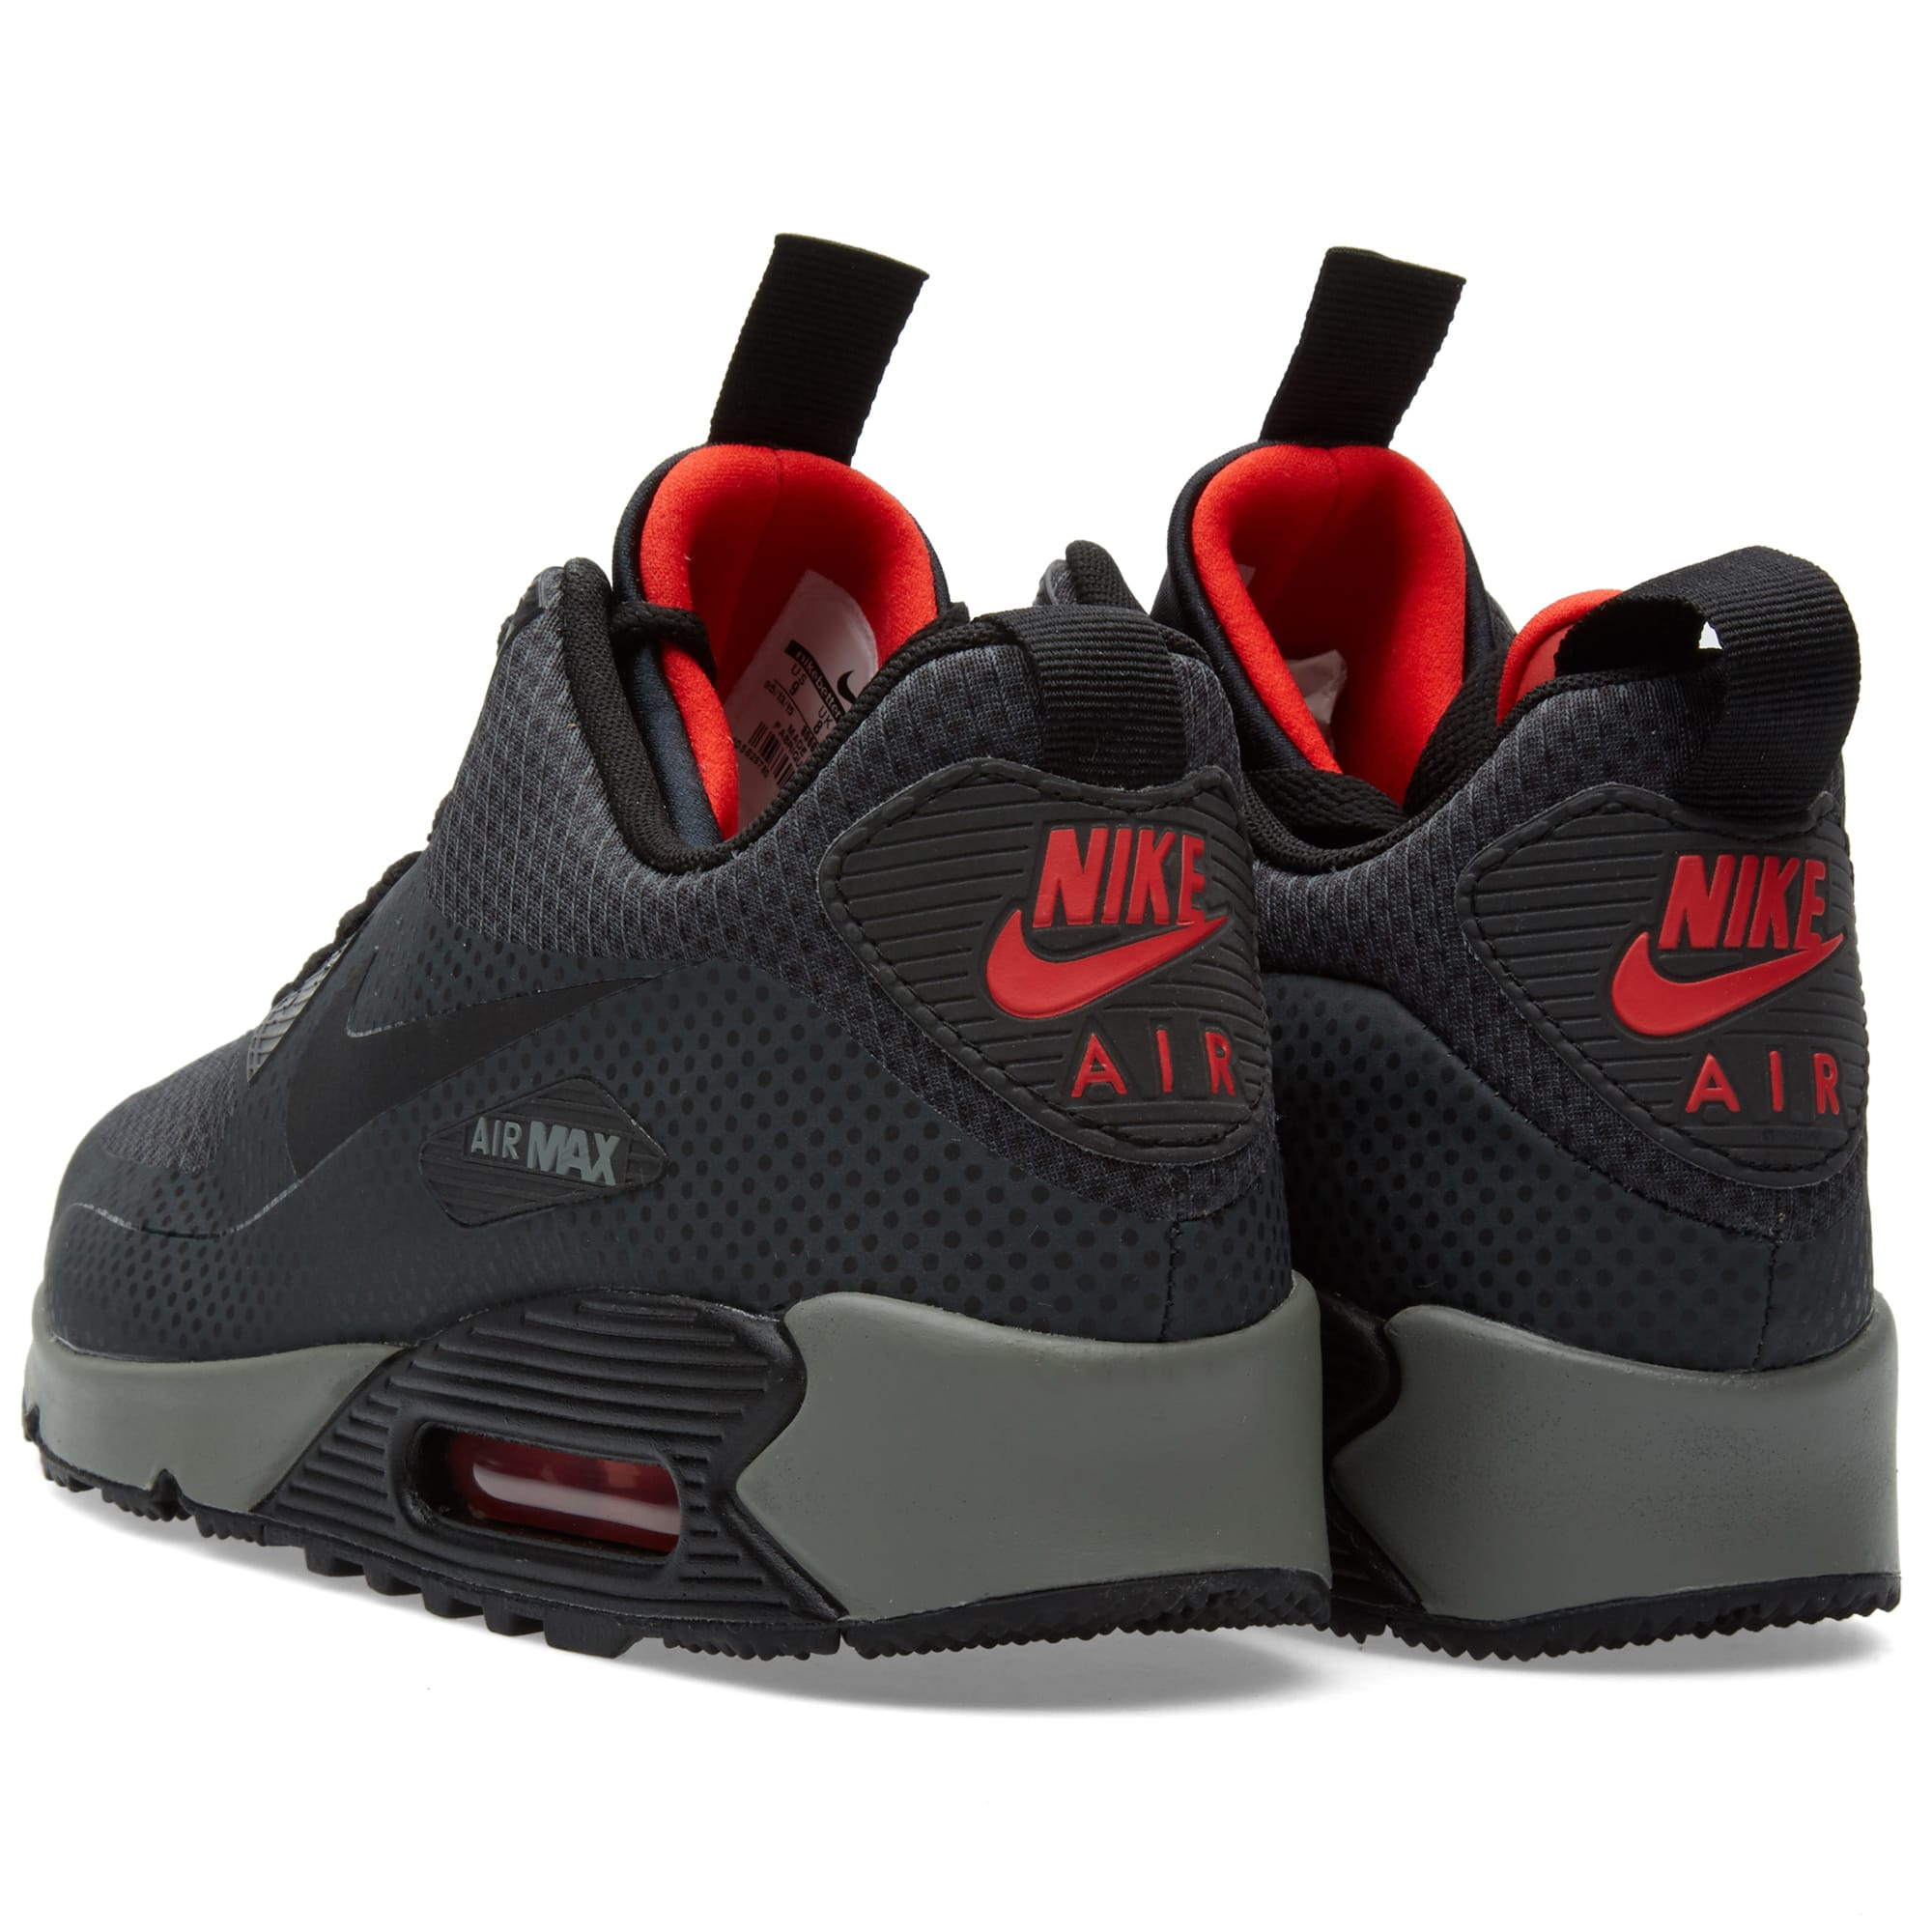 Nike Air Max 90 Mid Winter Print SZ 6.5 Anthracite Black Chilling Red 806850 006